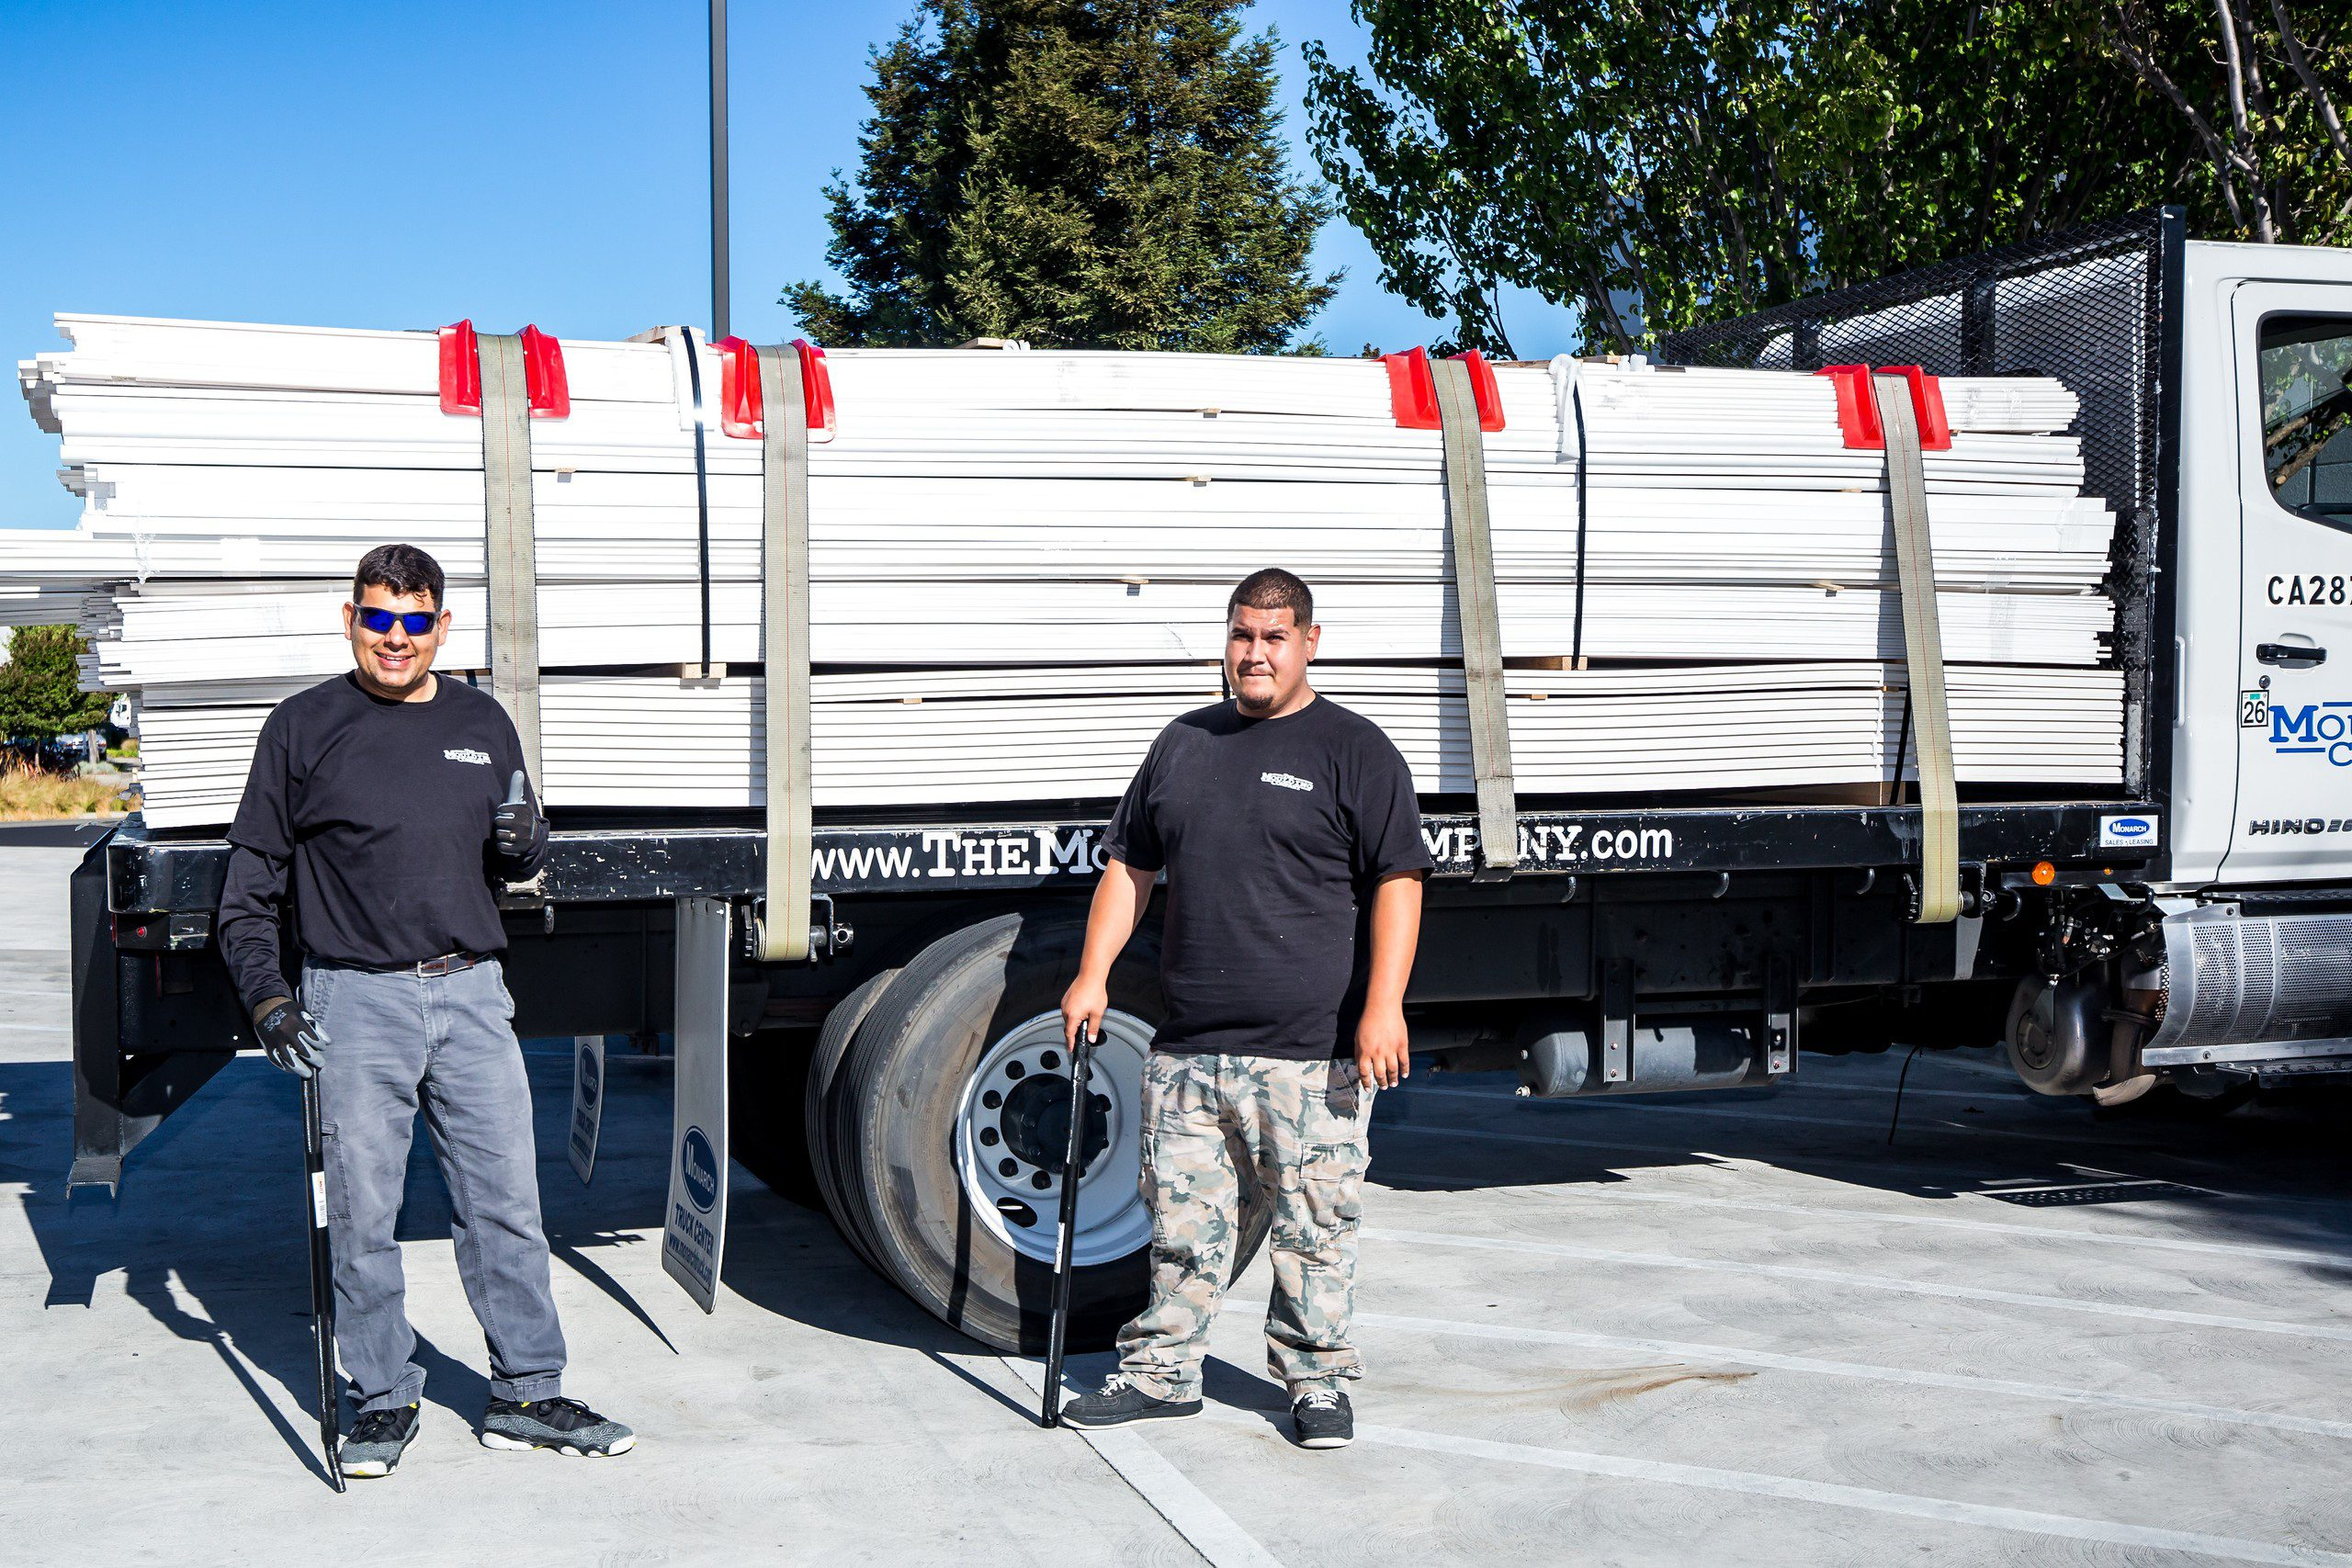 Employees with Delivery Truck